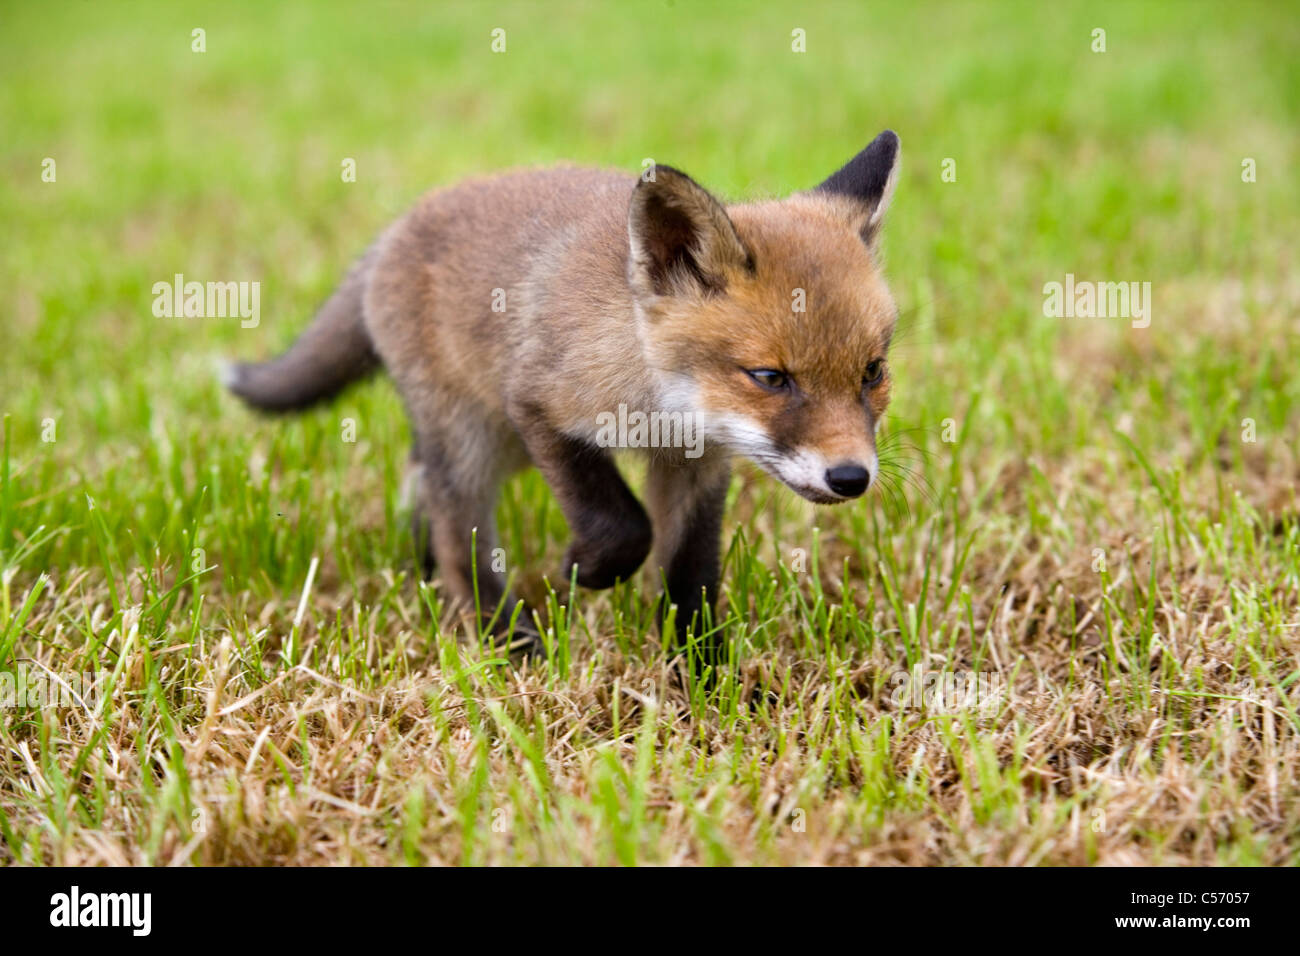 The Netherlands, 's-Graveland. Rural Estate called Gooilust. Young fox who has lost his mother. - Stock Image